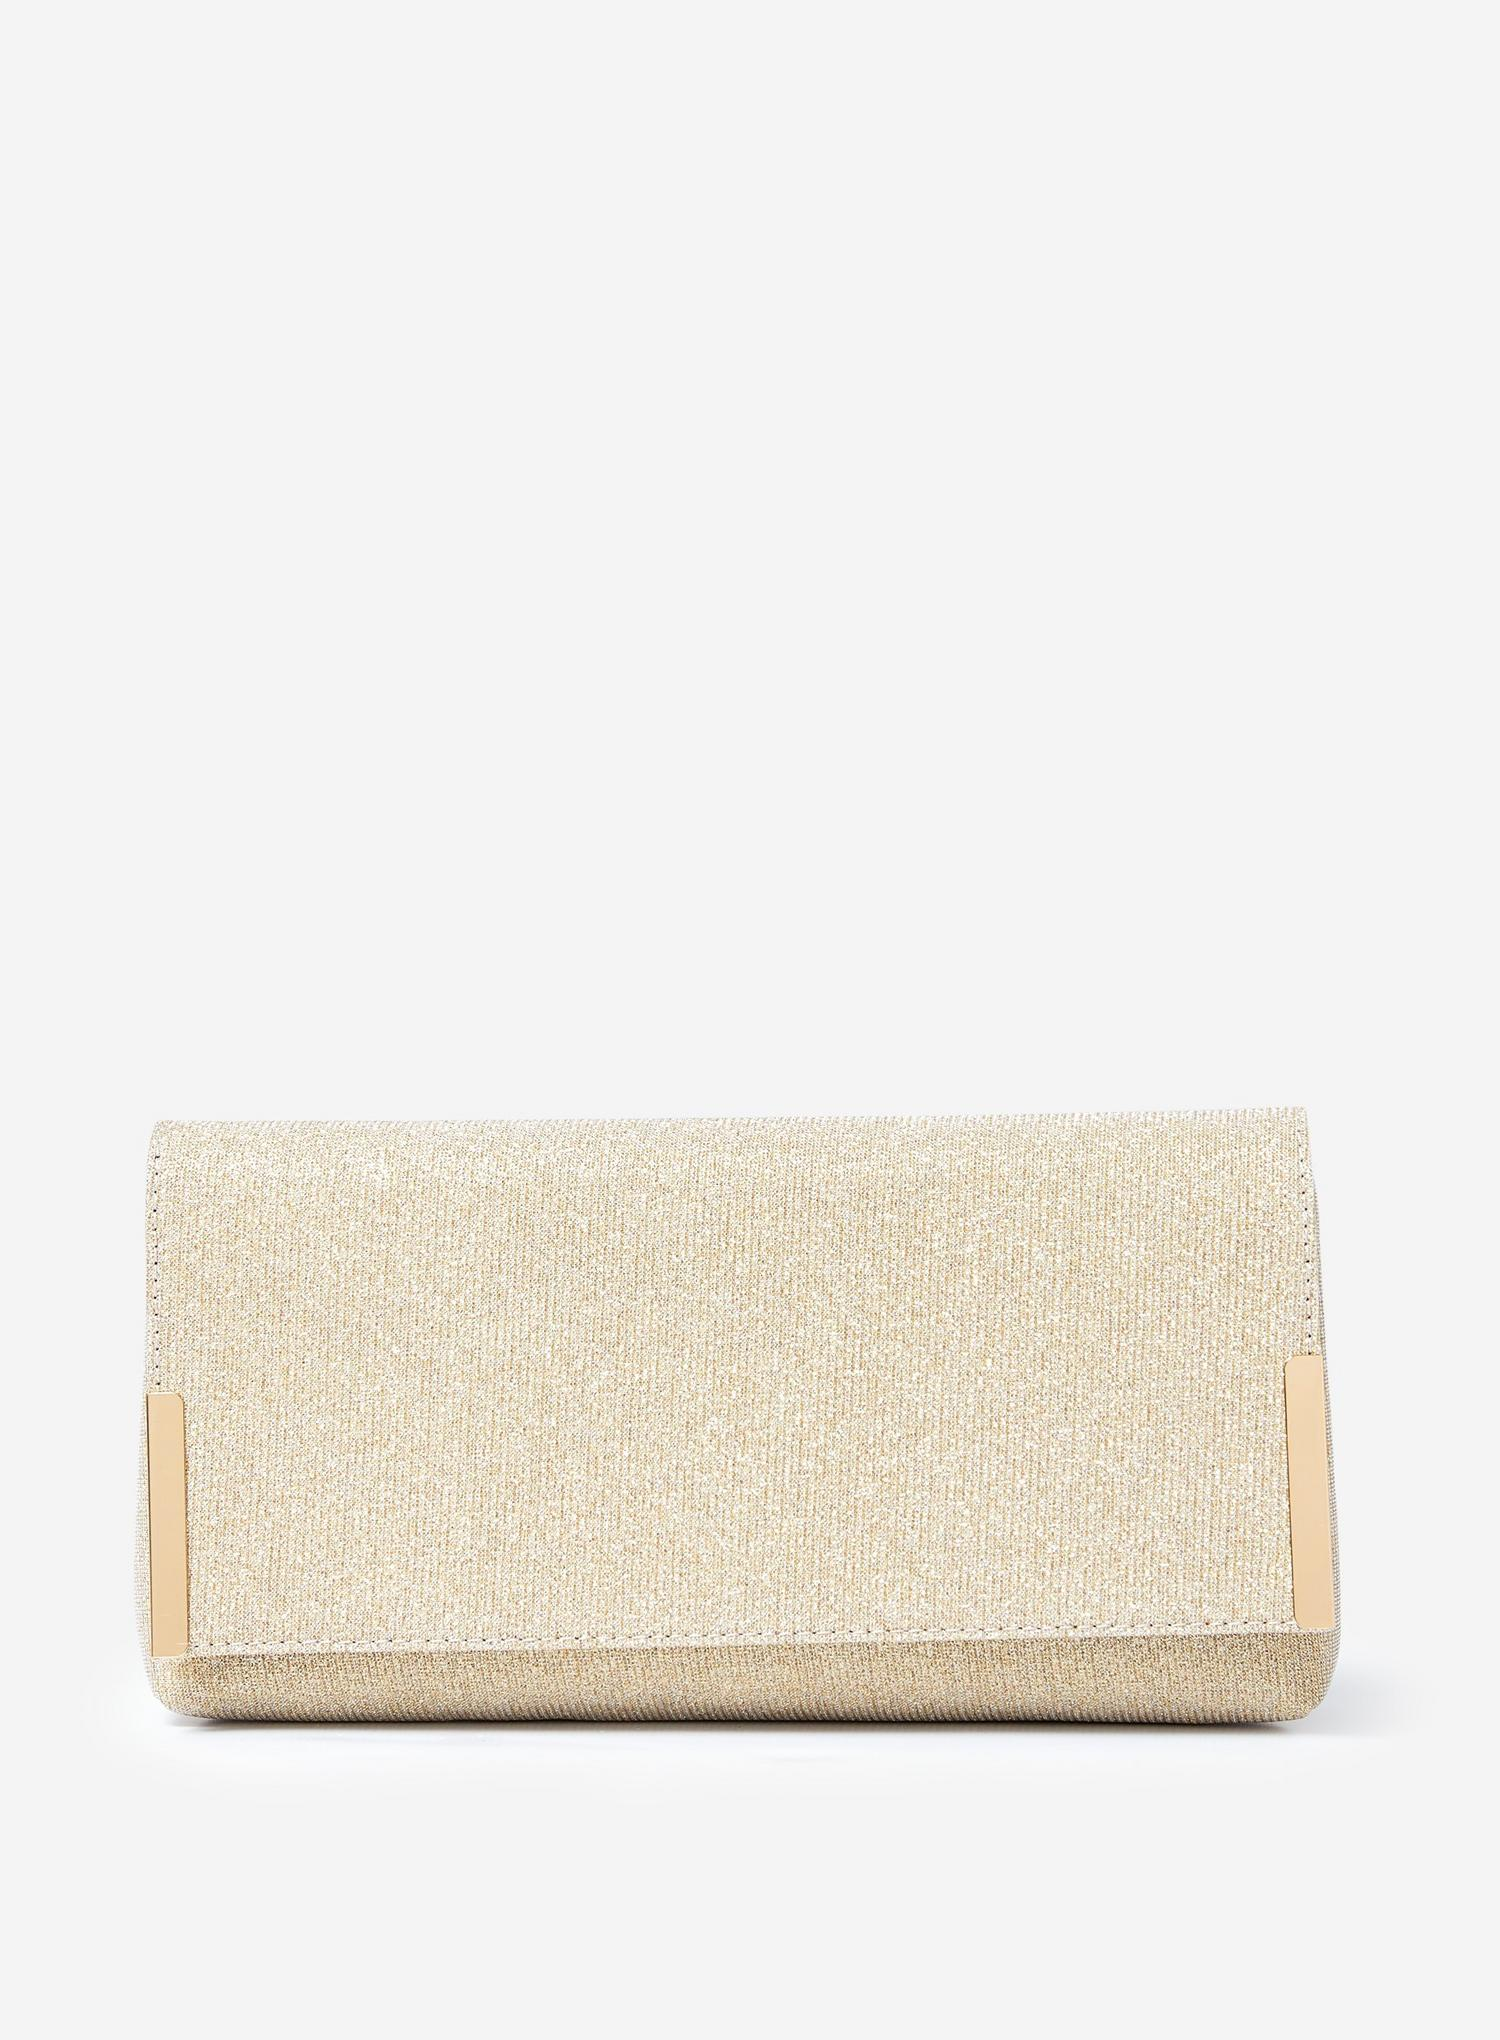 579 Gold Metal Side Bar Clutch Bag image number 1